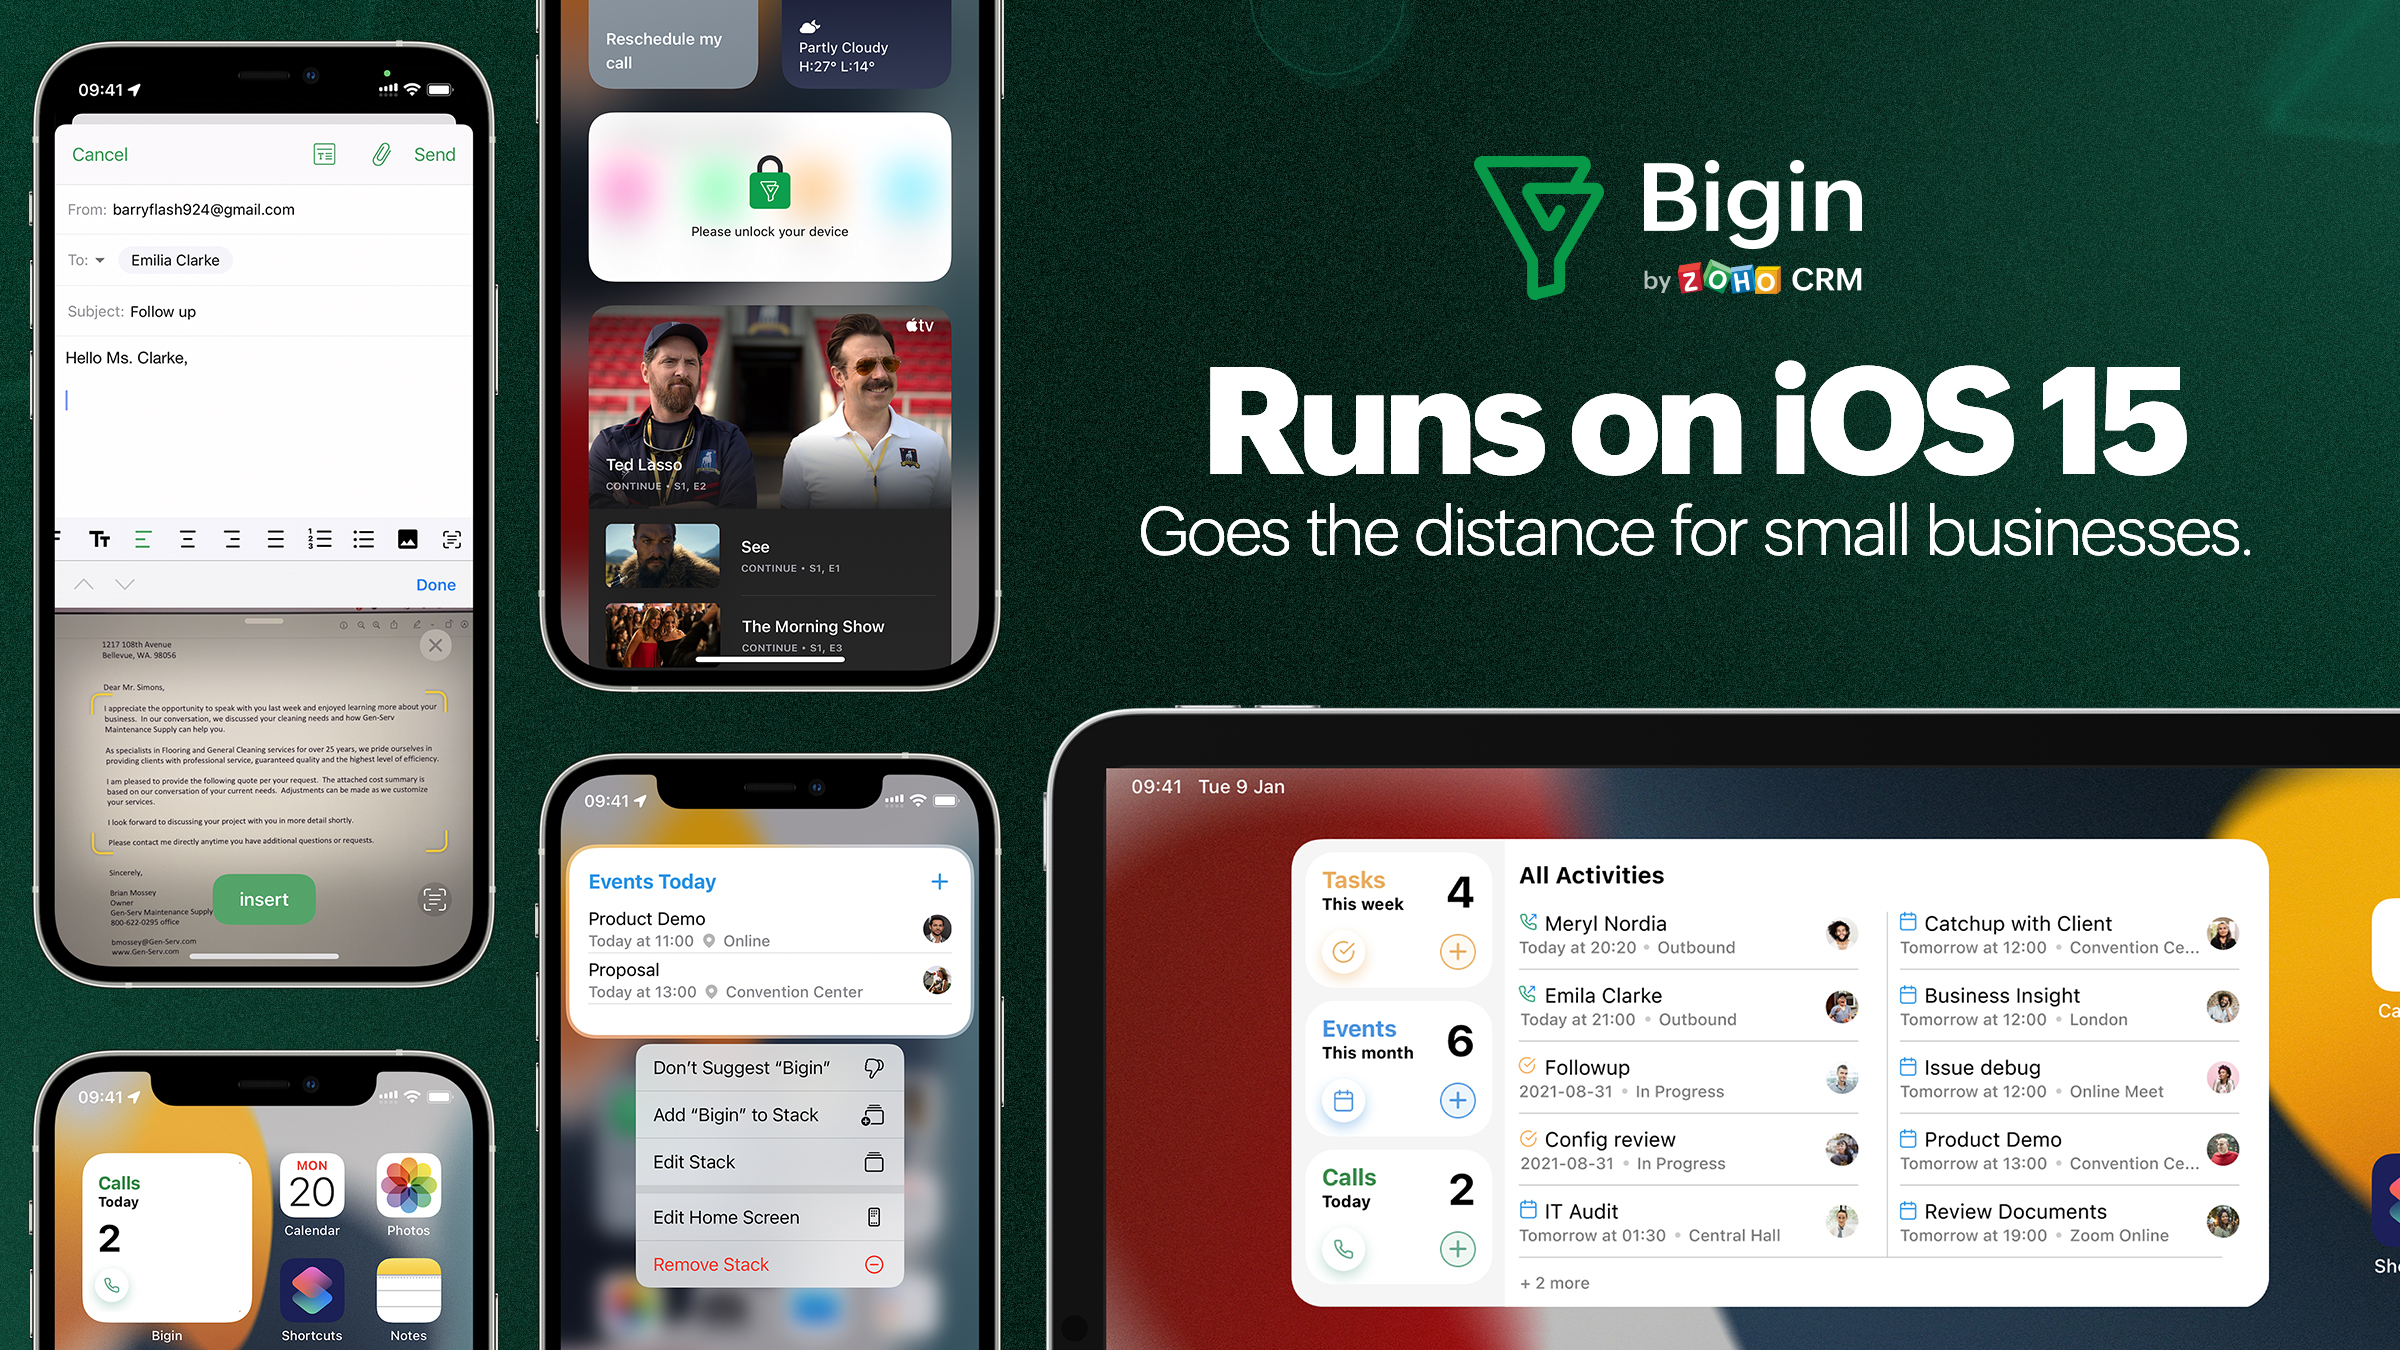 iOS 15 and iPadOS 15: Bigin is better, and more essential than ever to small businesses.